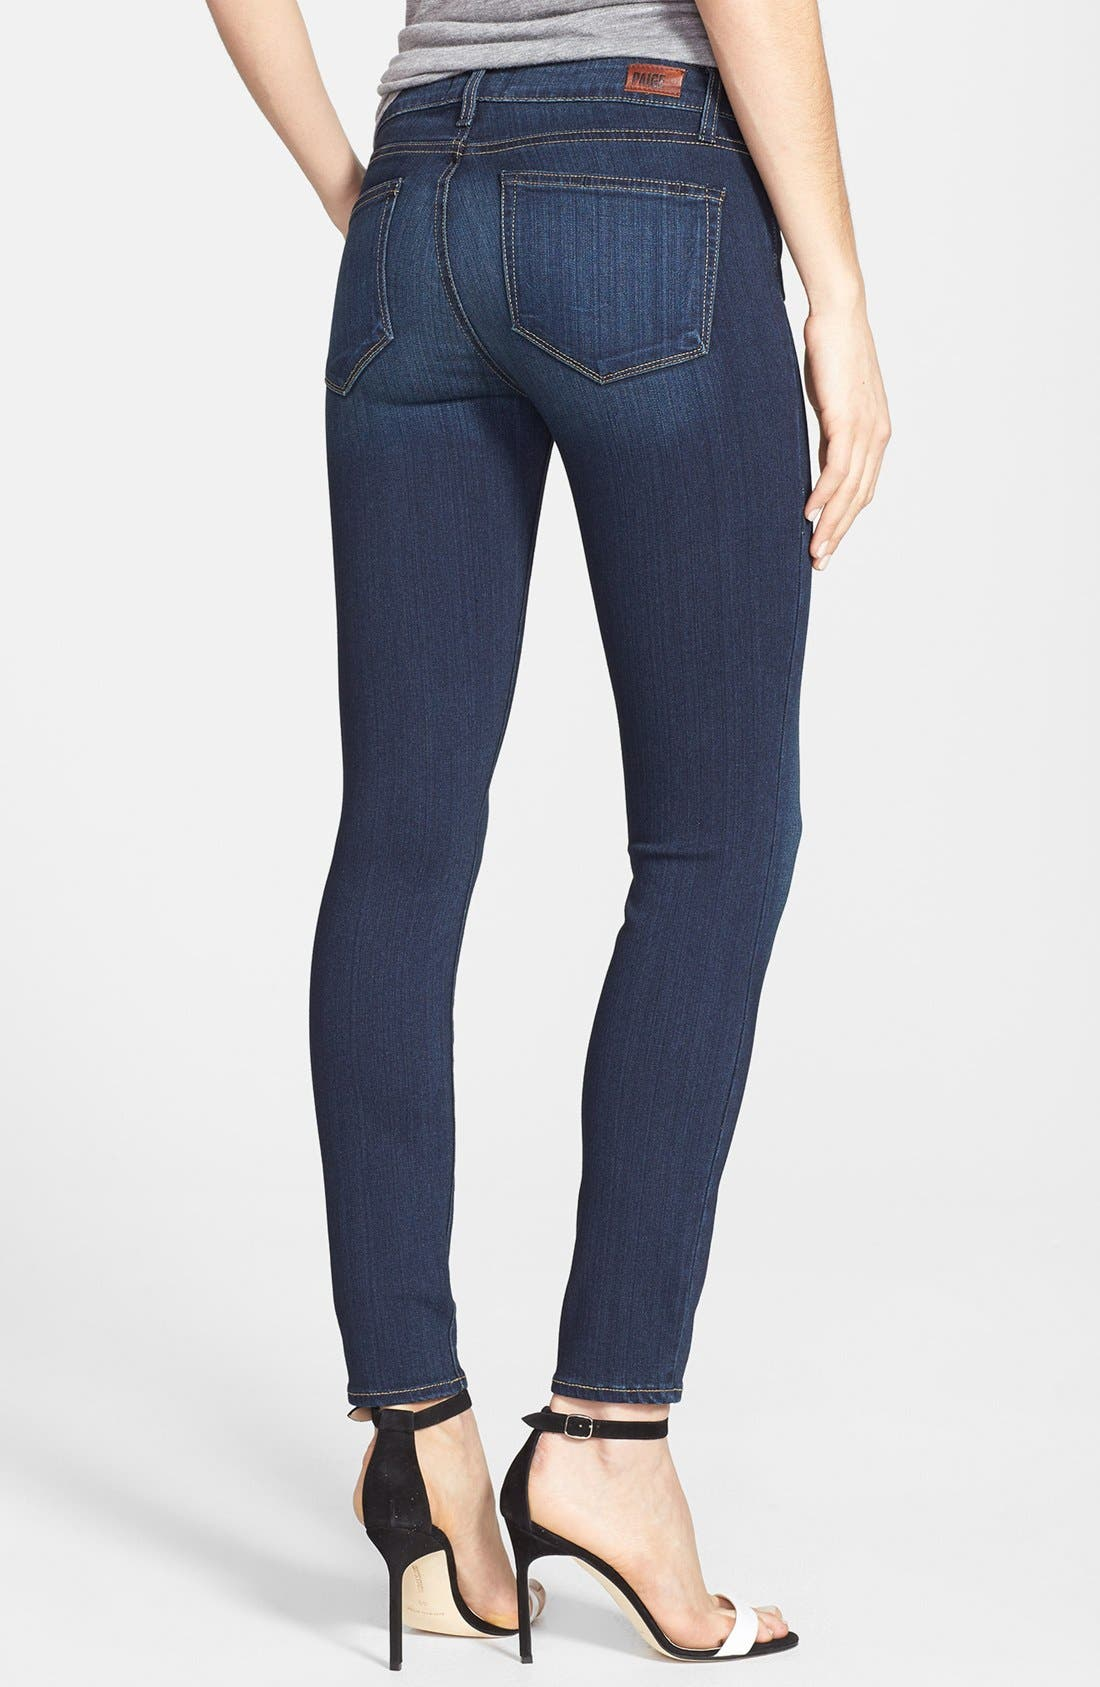 Transcend - Verdugo Ankle Skinny Jeans,                             Alternate thumbnail 3, color,                             Nottingham